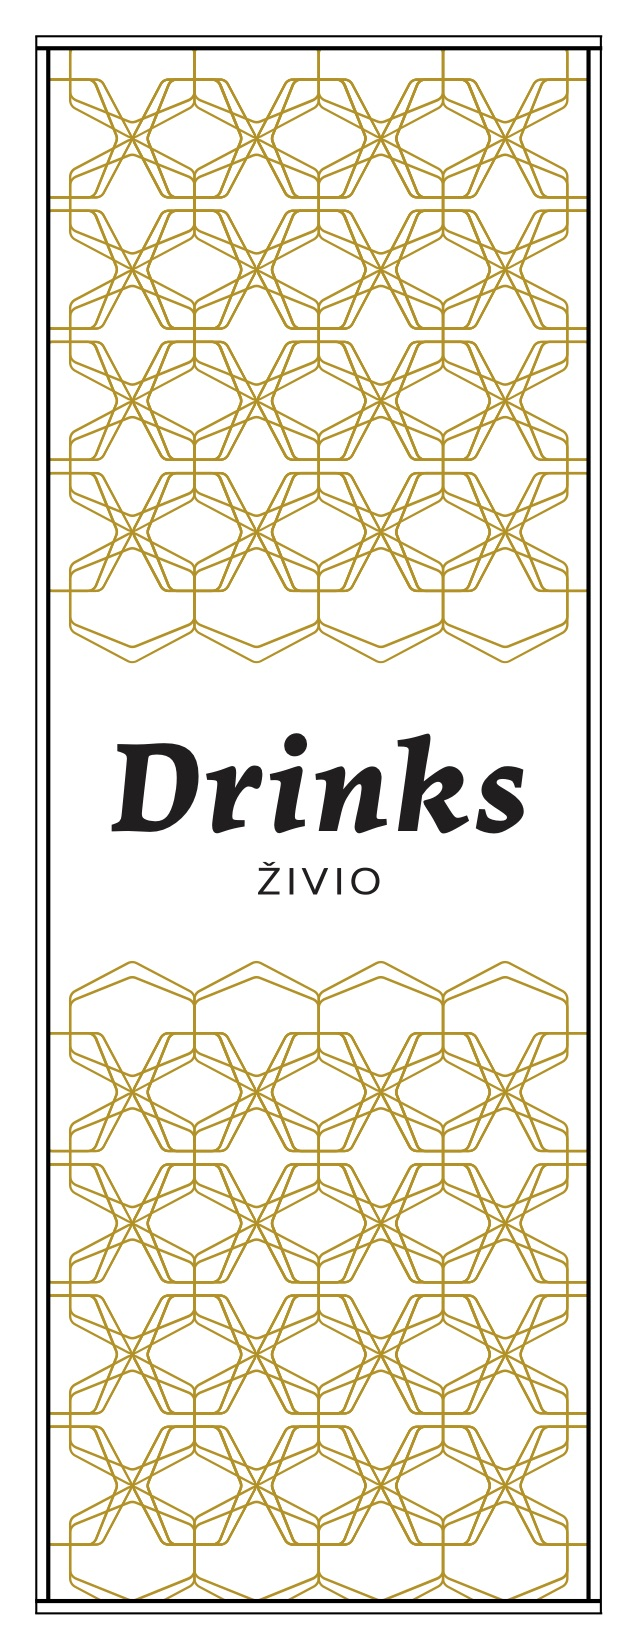 zivio drink menu update (2).jpg